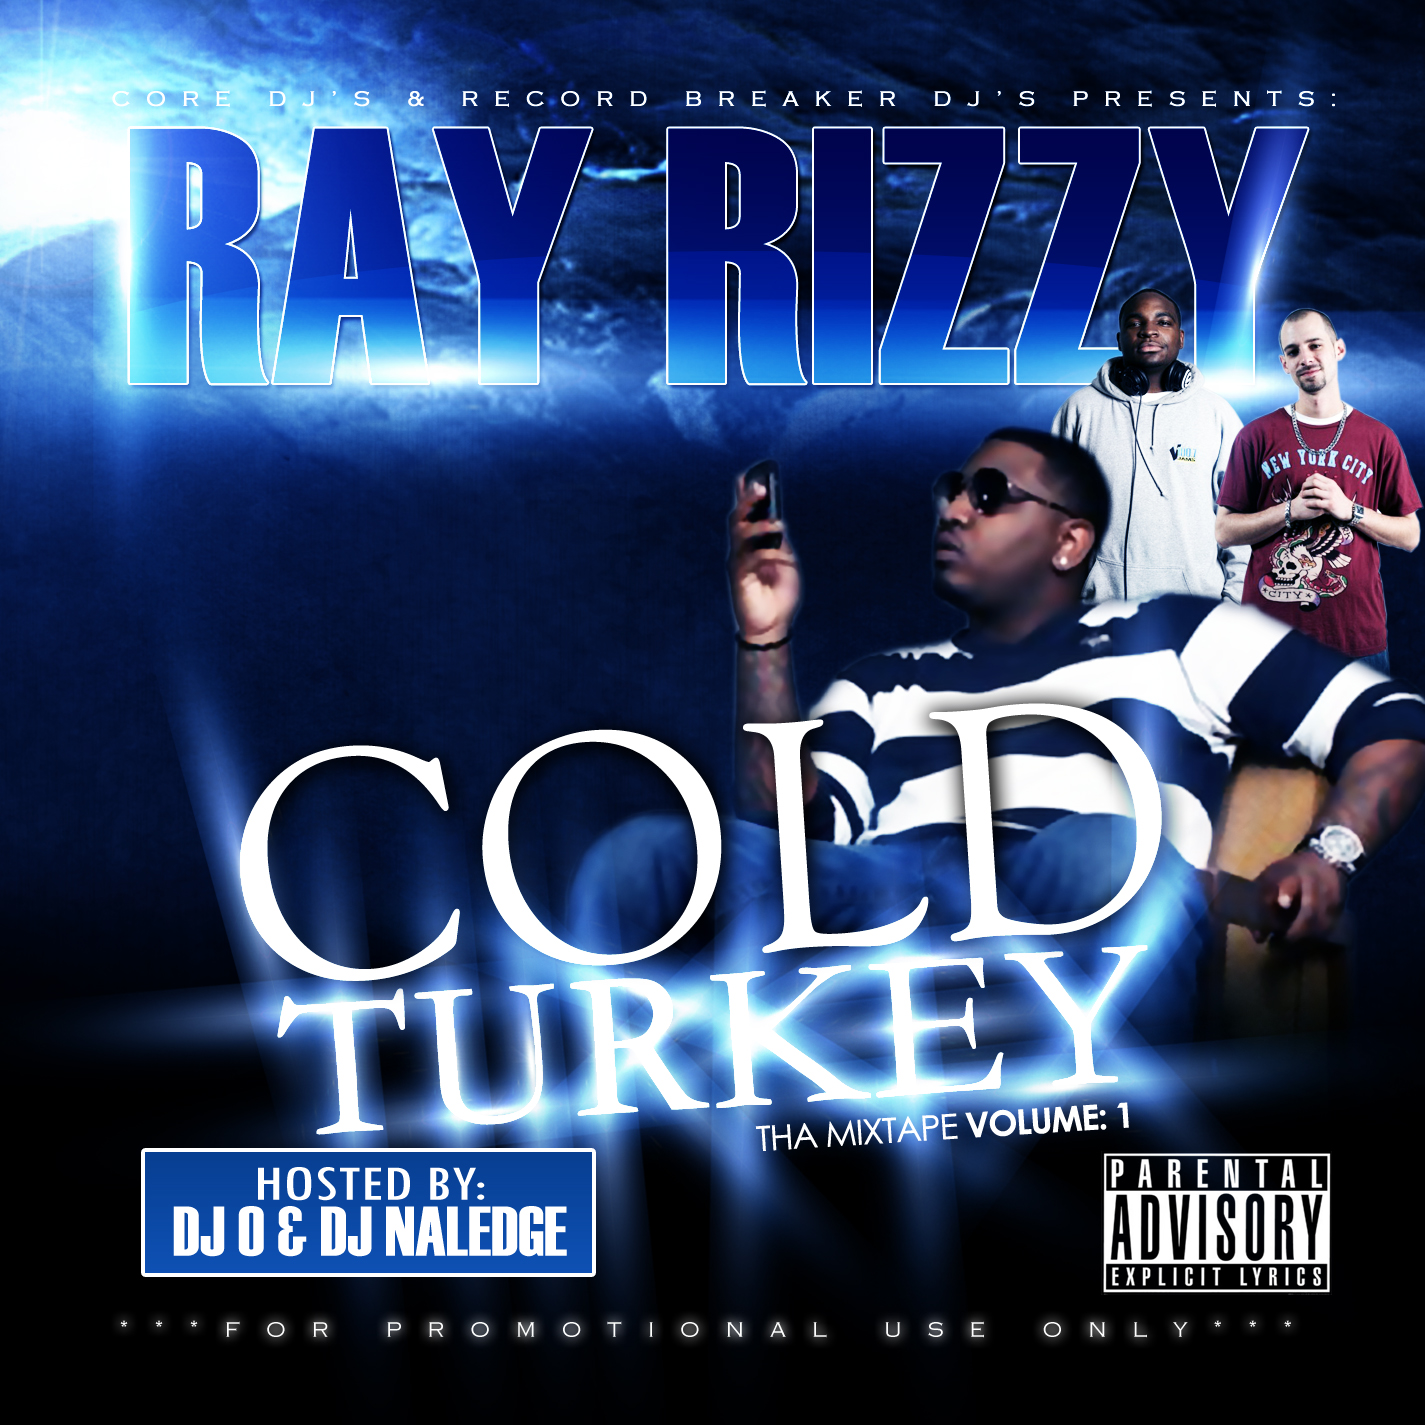 Cold Turkey The mixtape Cover